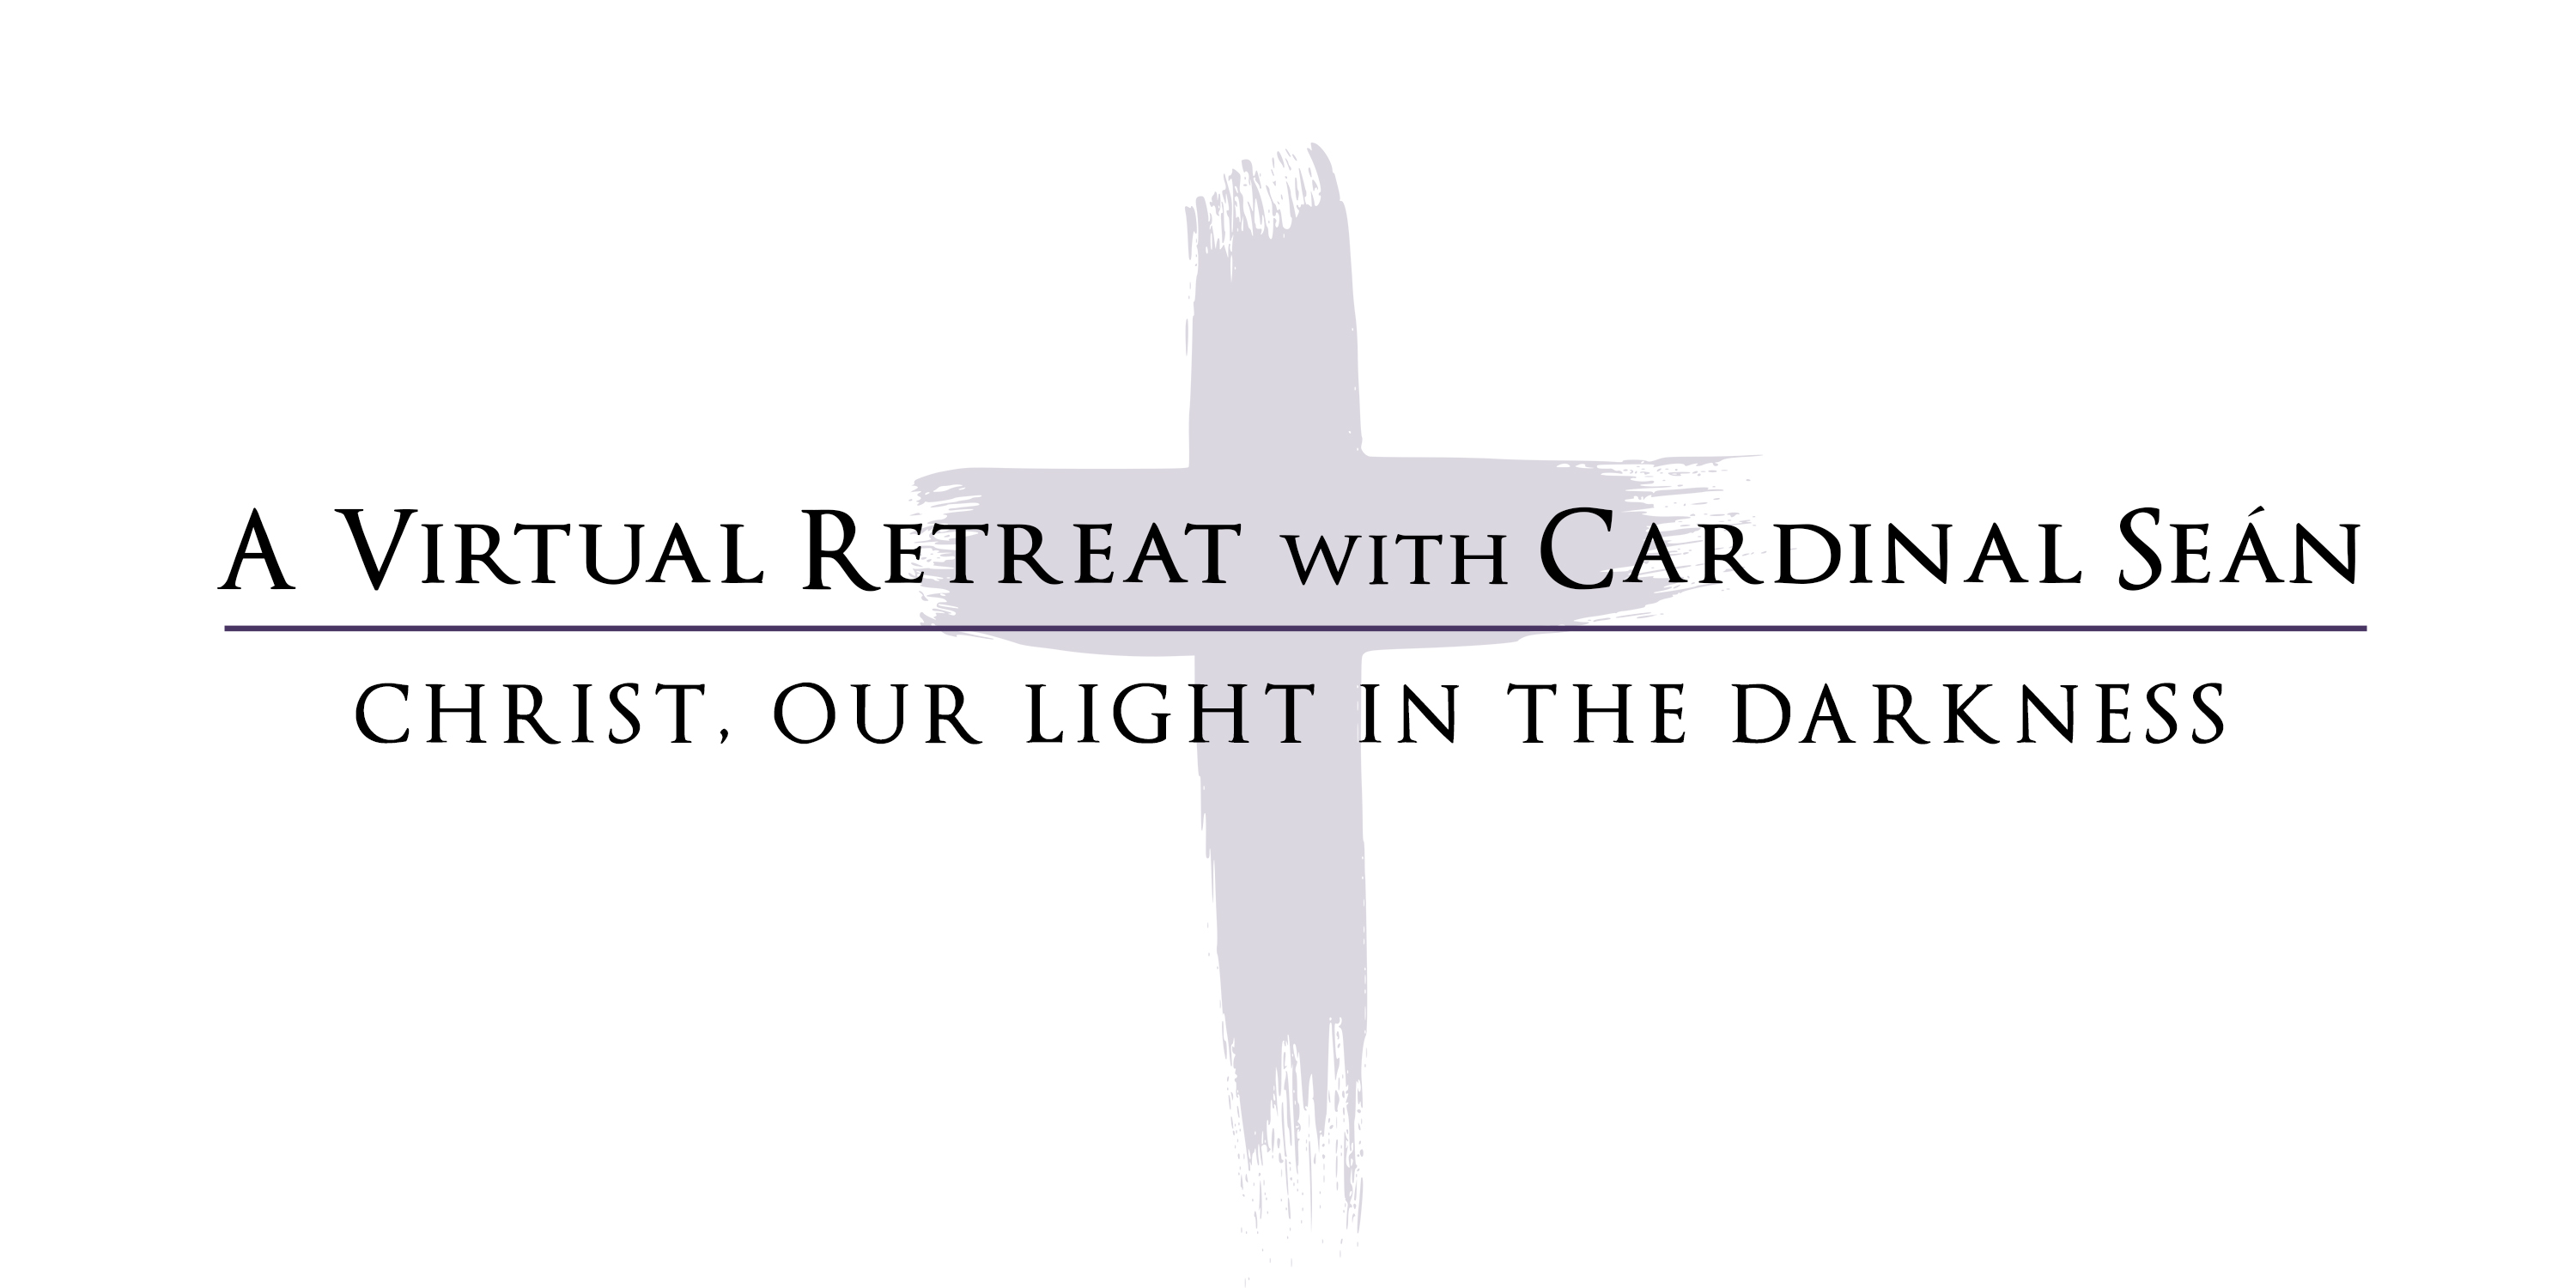 A virtual retreat with Cardinal Sean